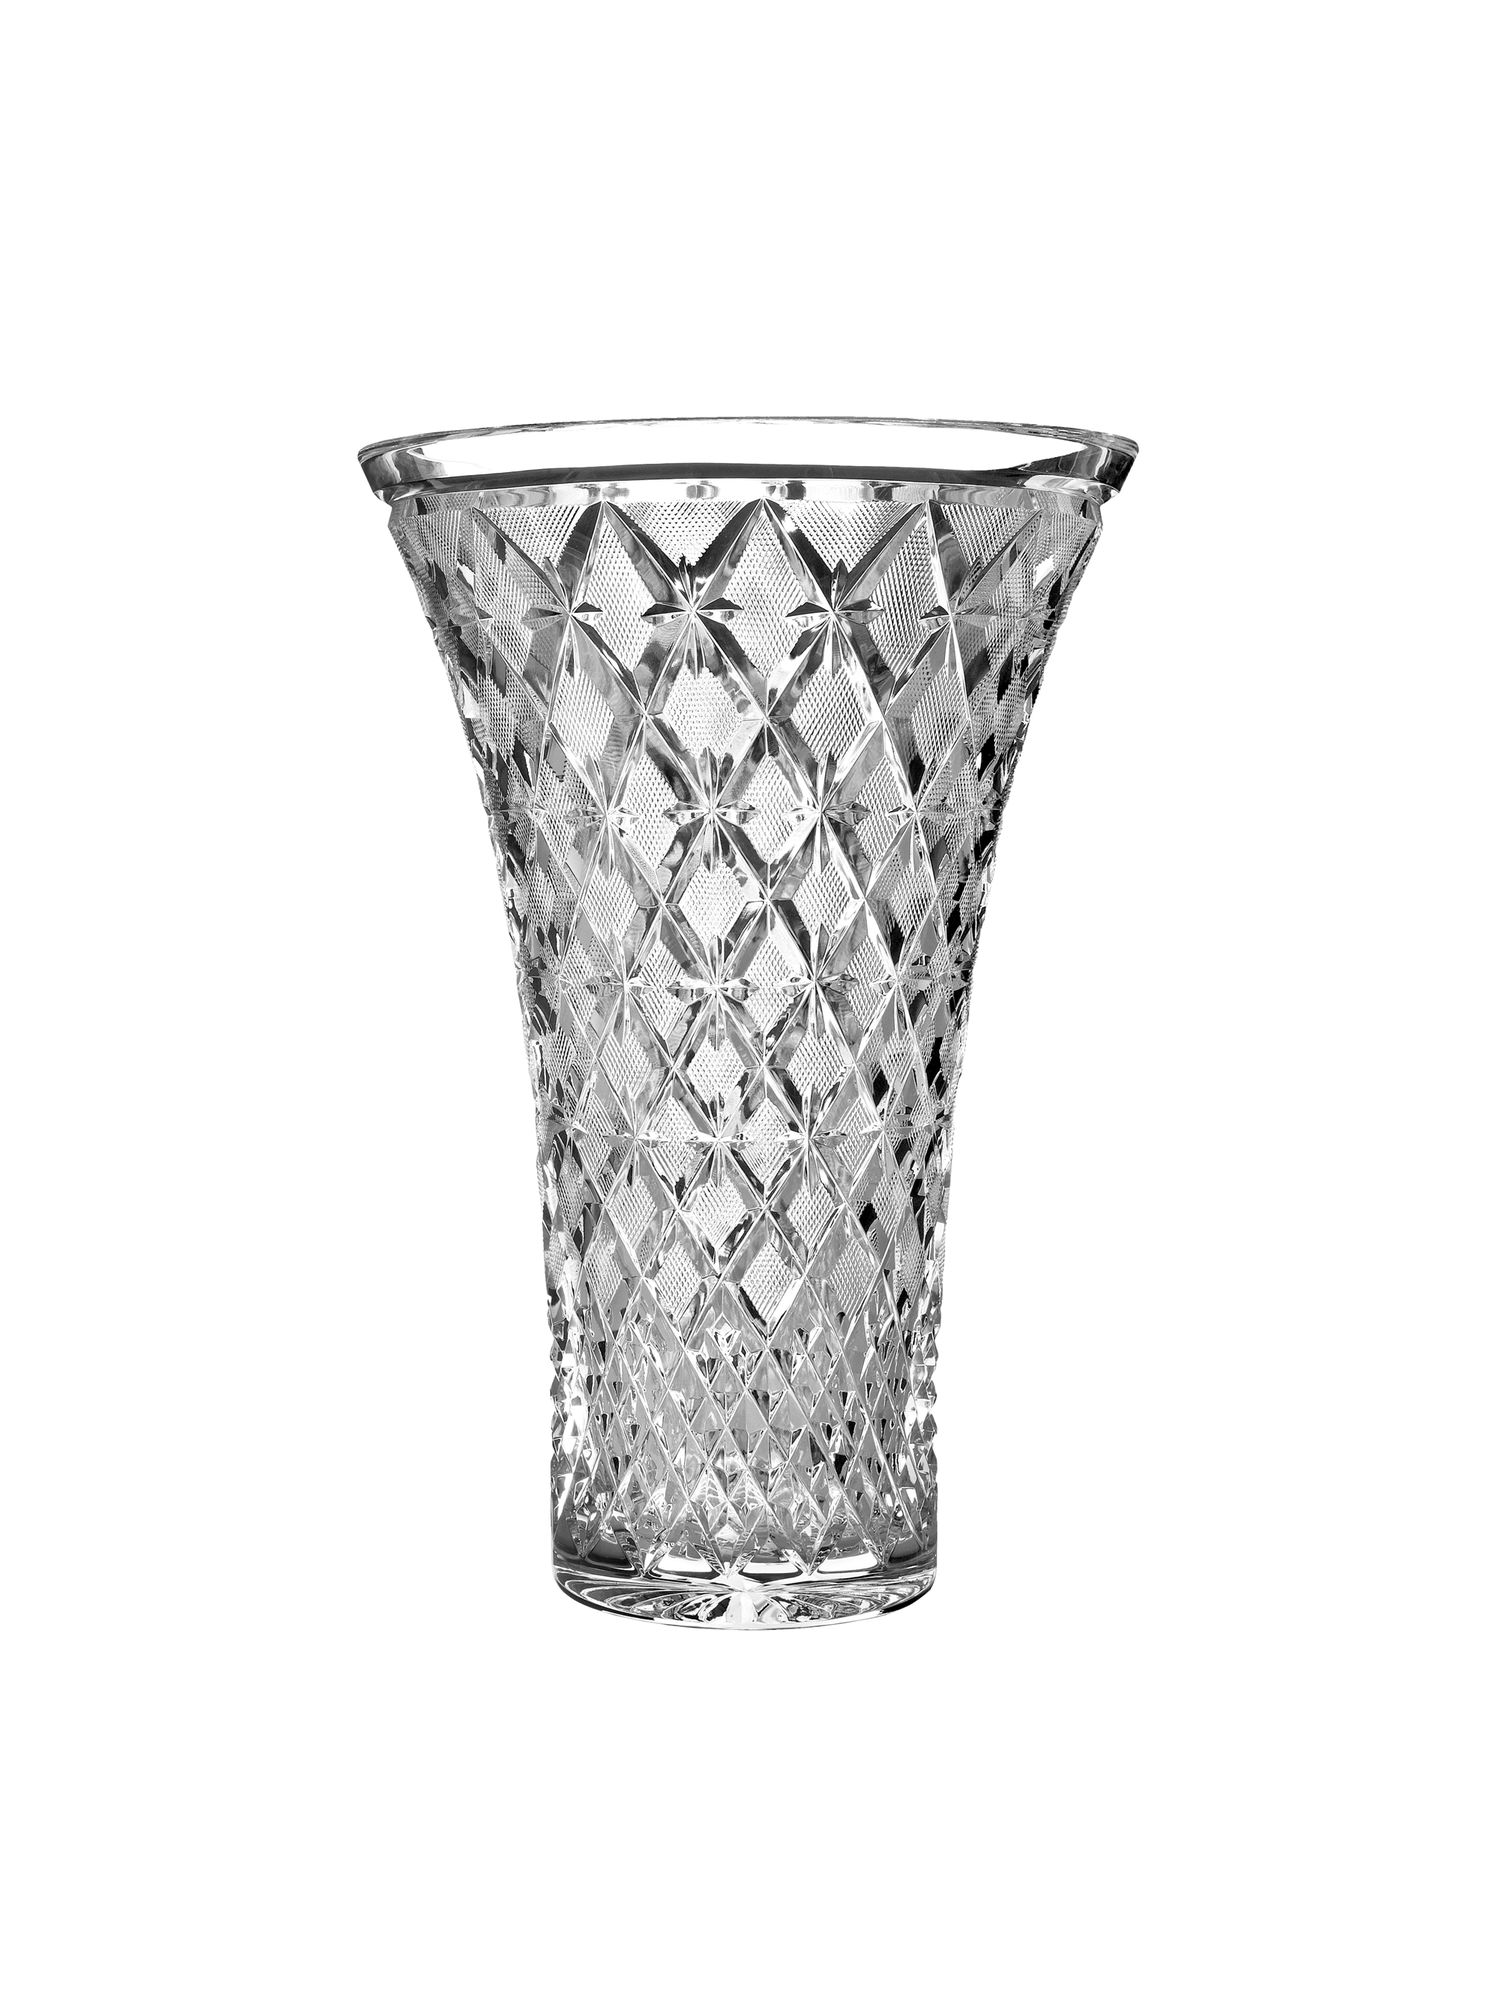 Crystal lace John Connolly 14 inch vase